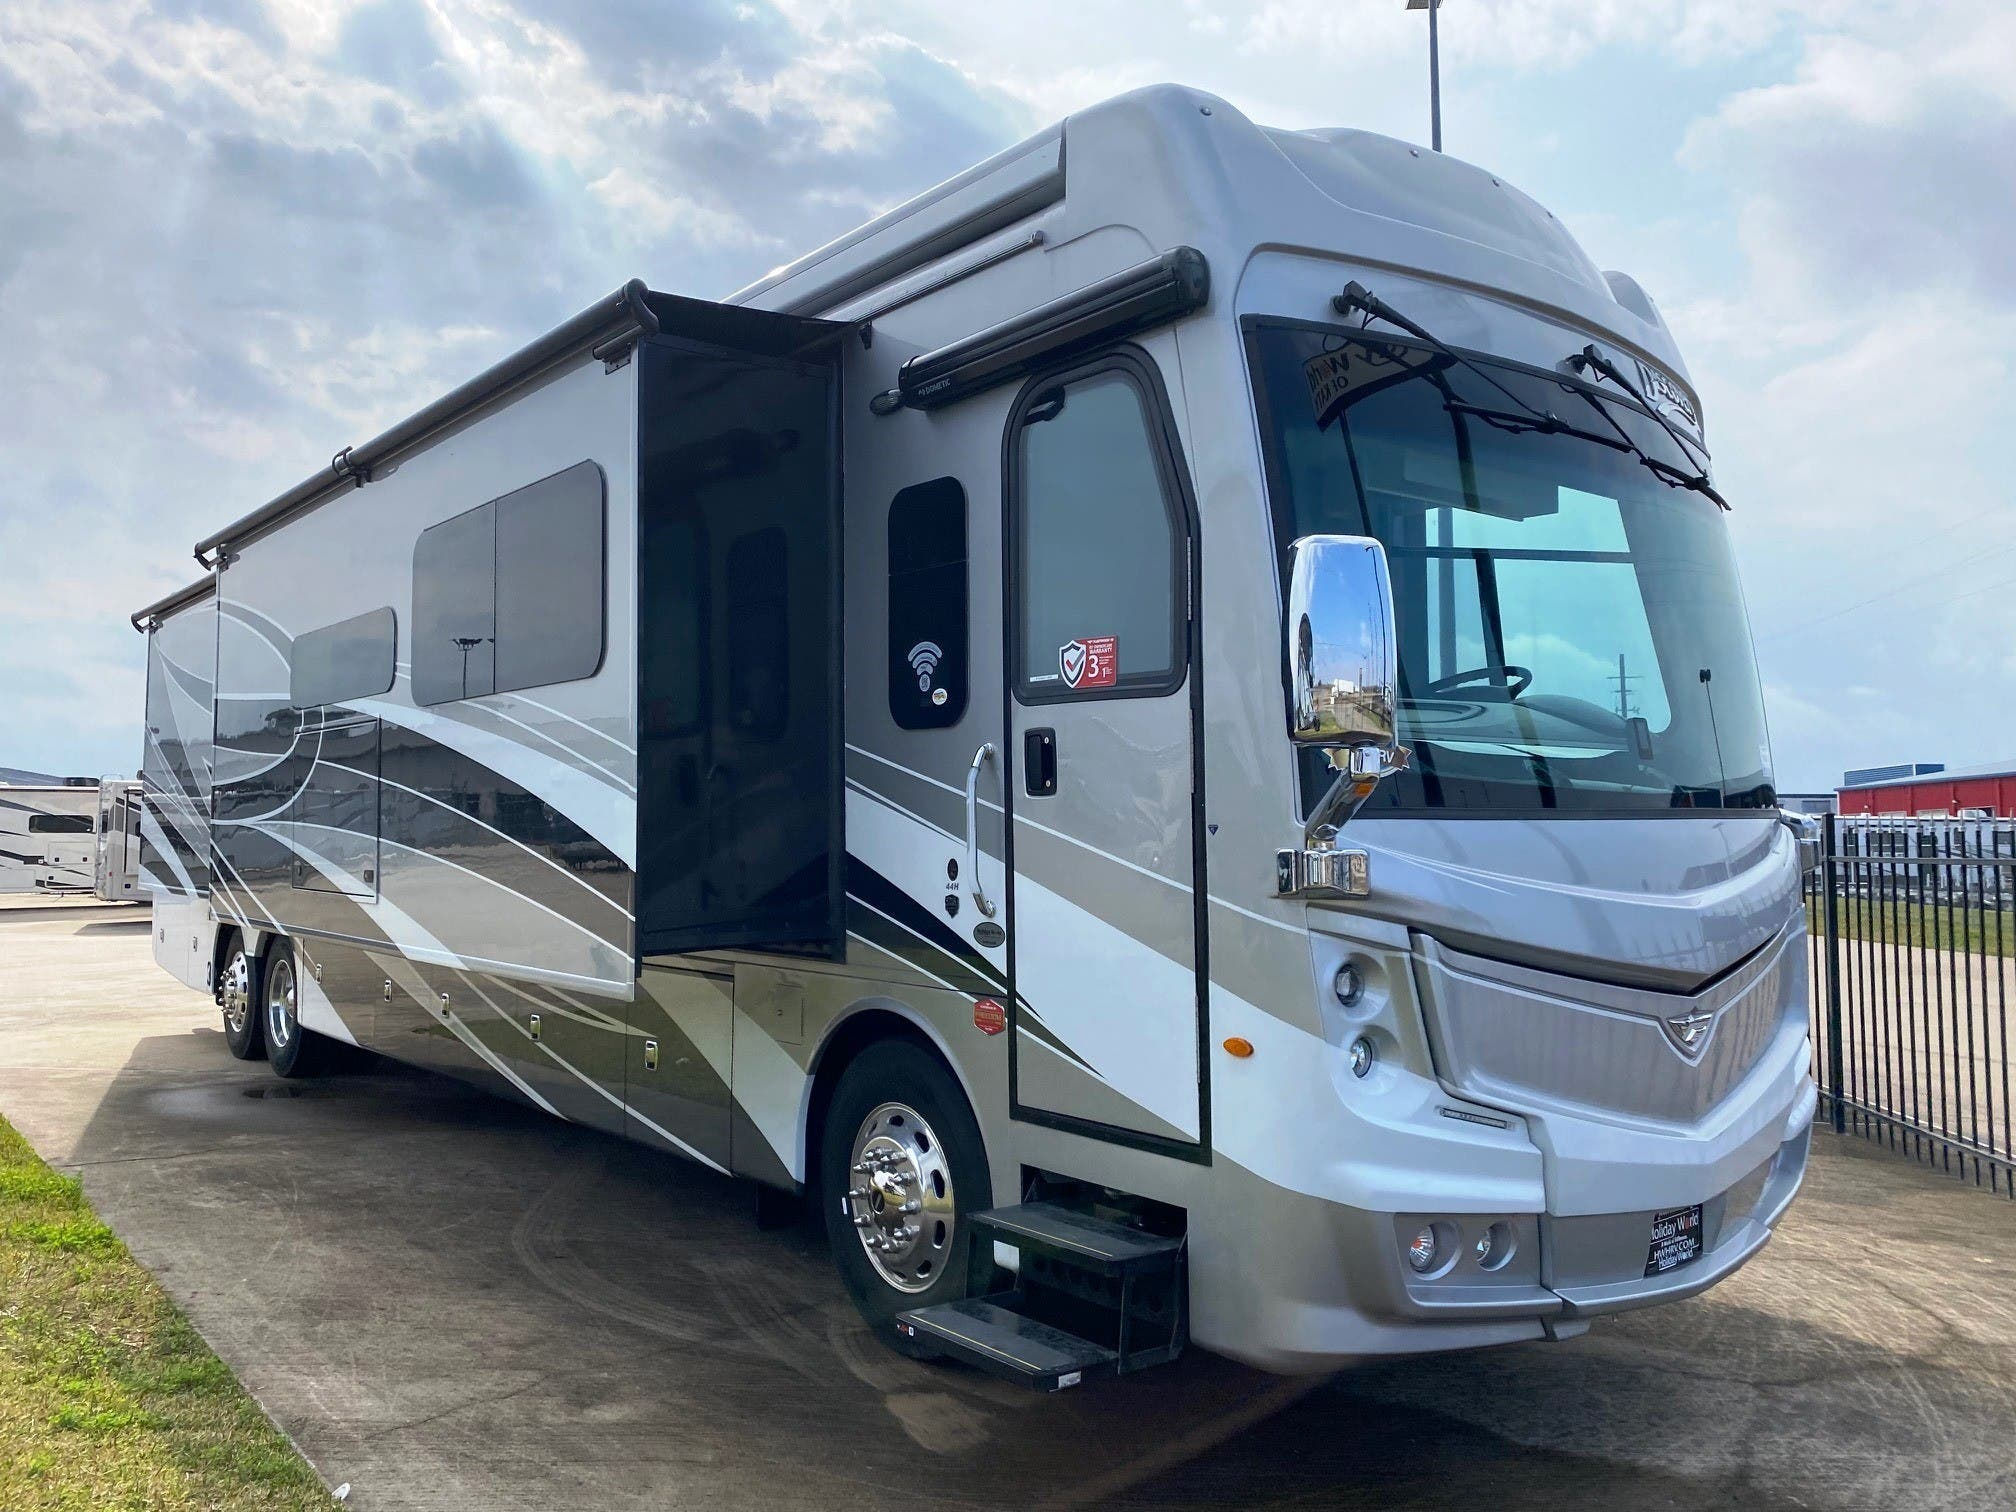 2021 Fleetwood Discovery 44h Lxe Rvs For Sale In Texas New Mexico Holiday World Rv Dealerships In Texas New Mexico